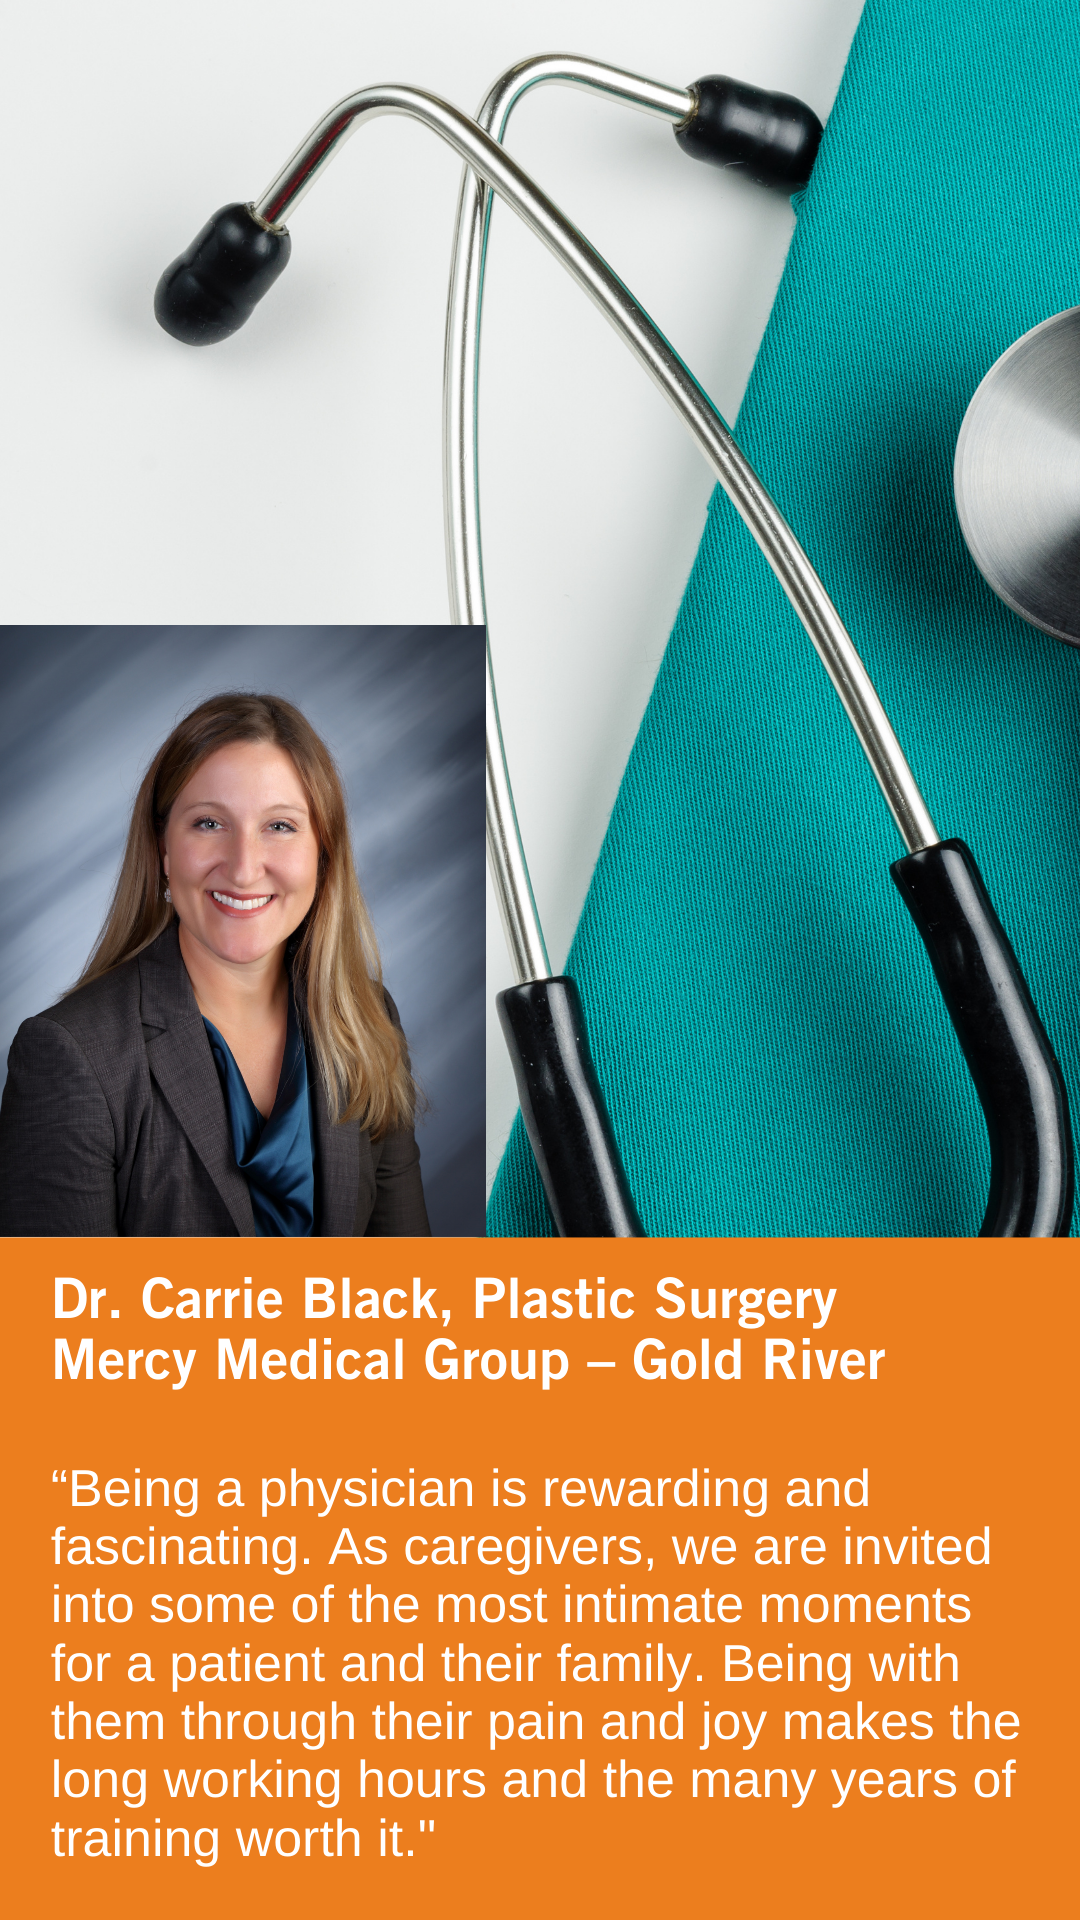 Carrie Black, MD, Cosmetic, Plastic & Reconstructive Surgery, Mercy Medical Group